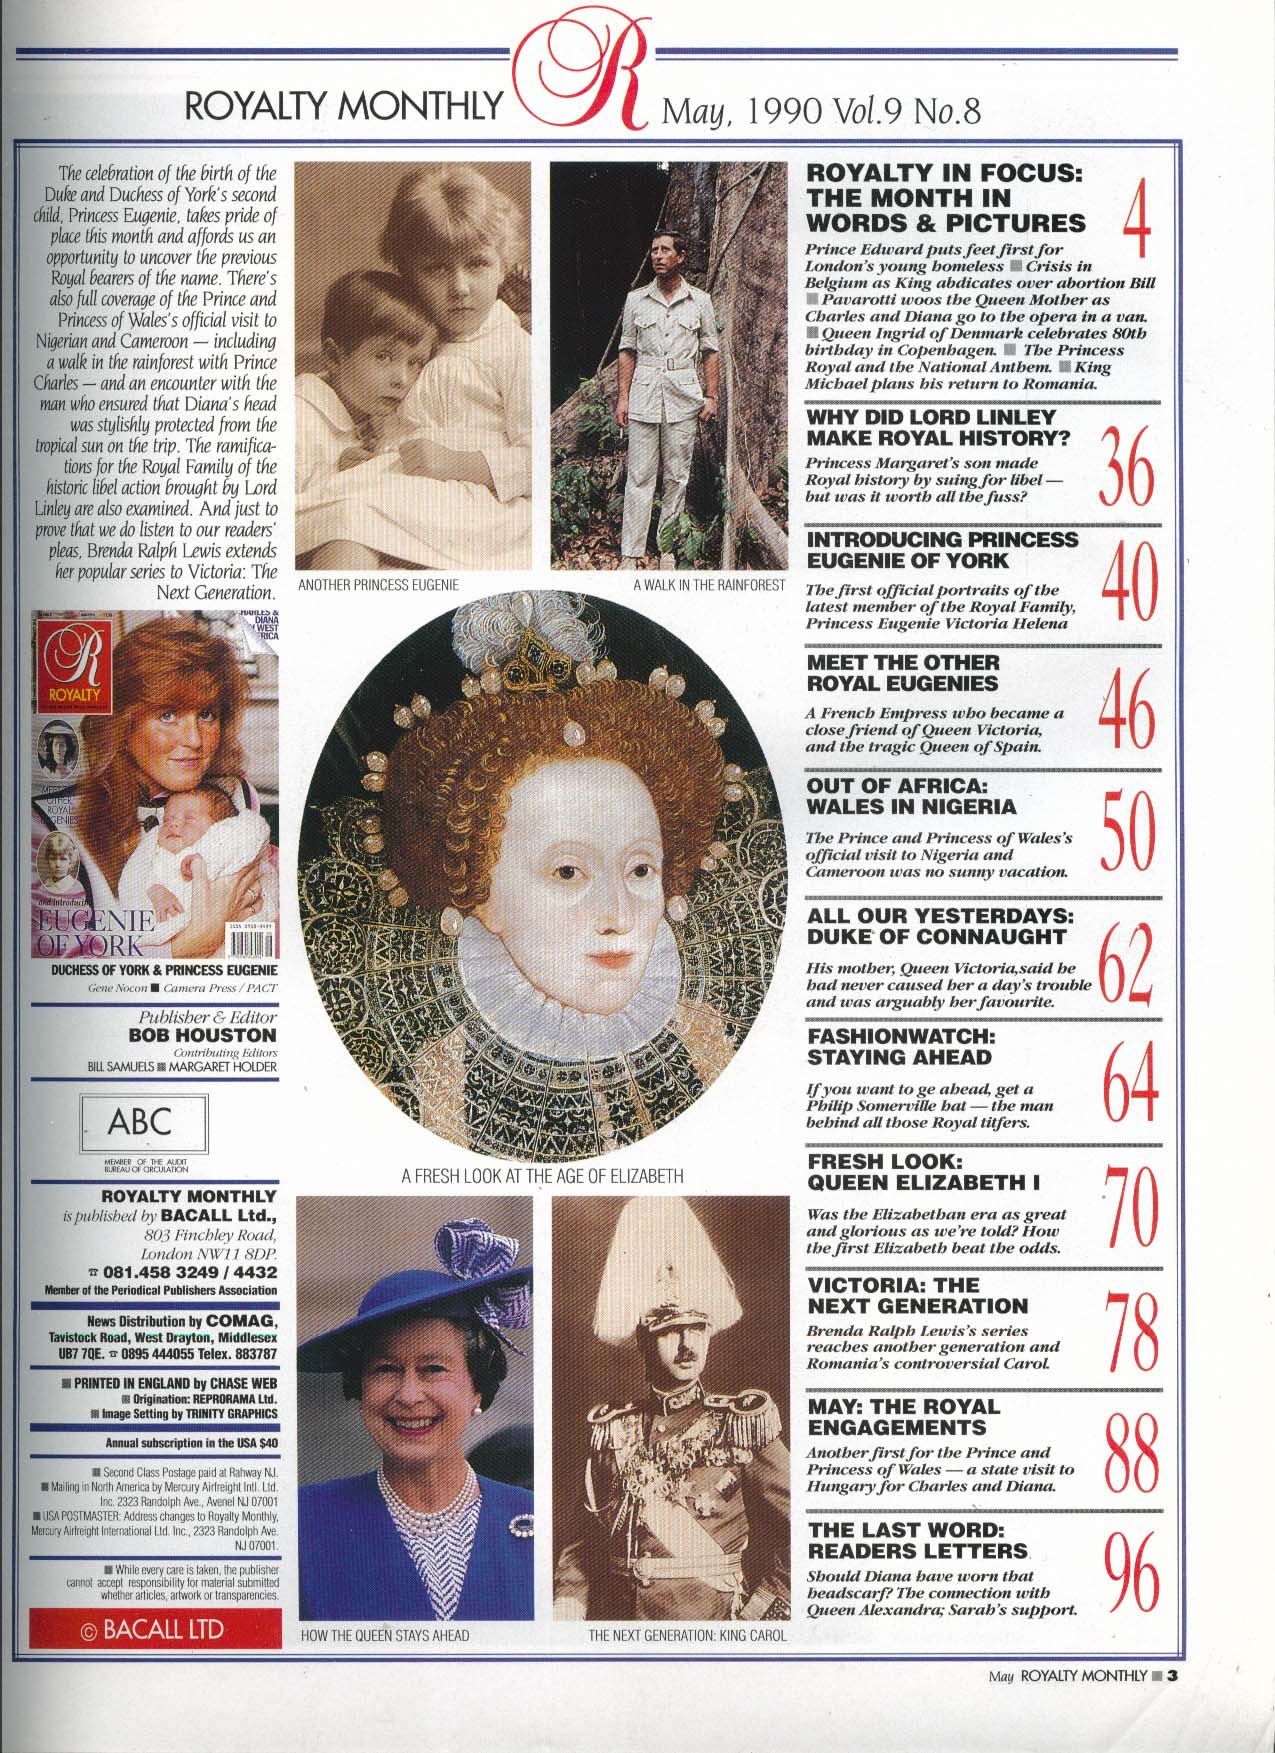 ROYALTY MONTHLY Sarah Eugenie of York Charles & Diana in West Africa 5 1990